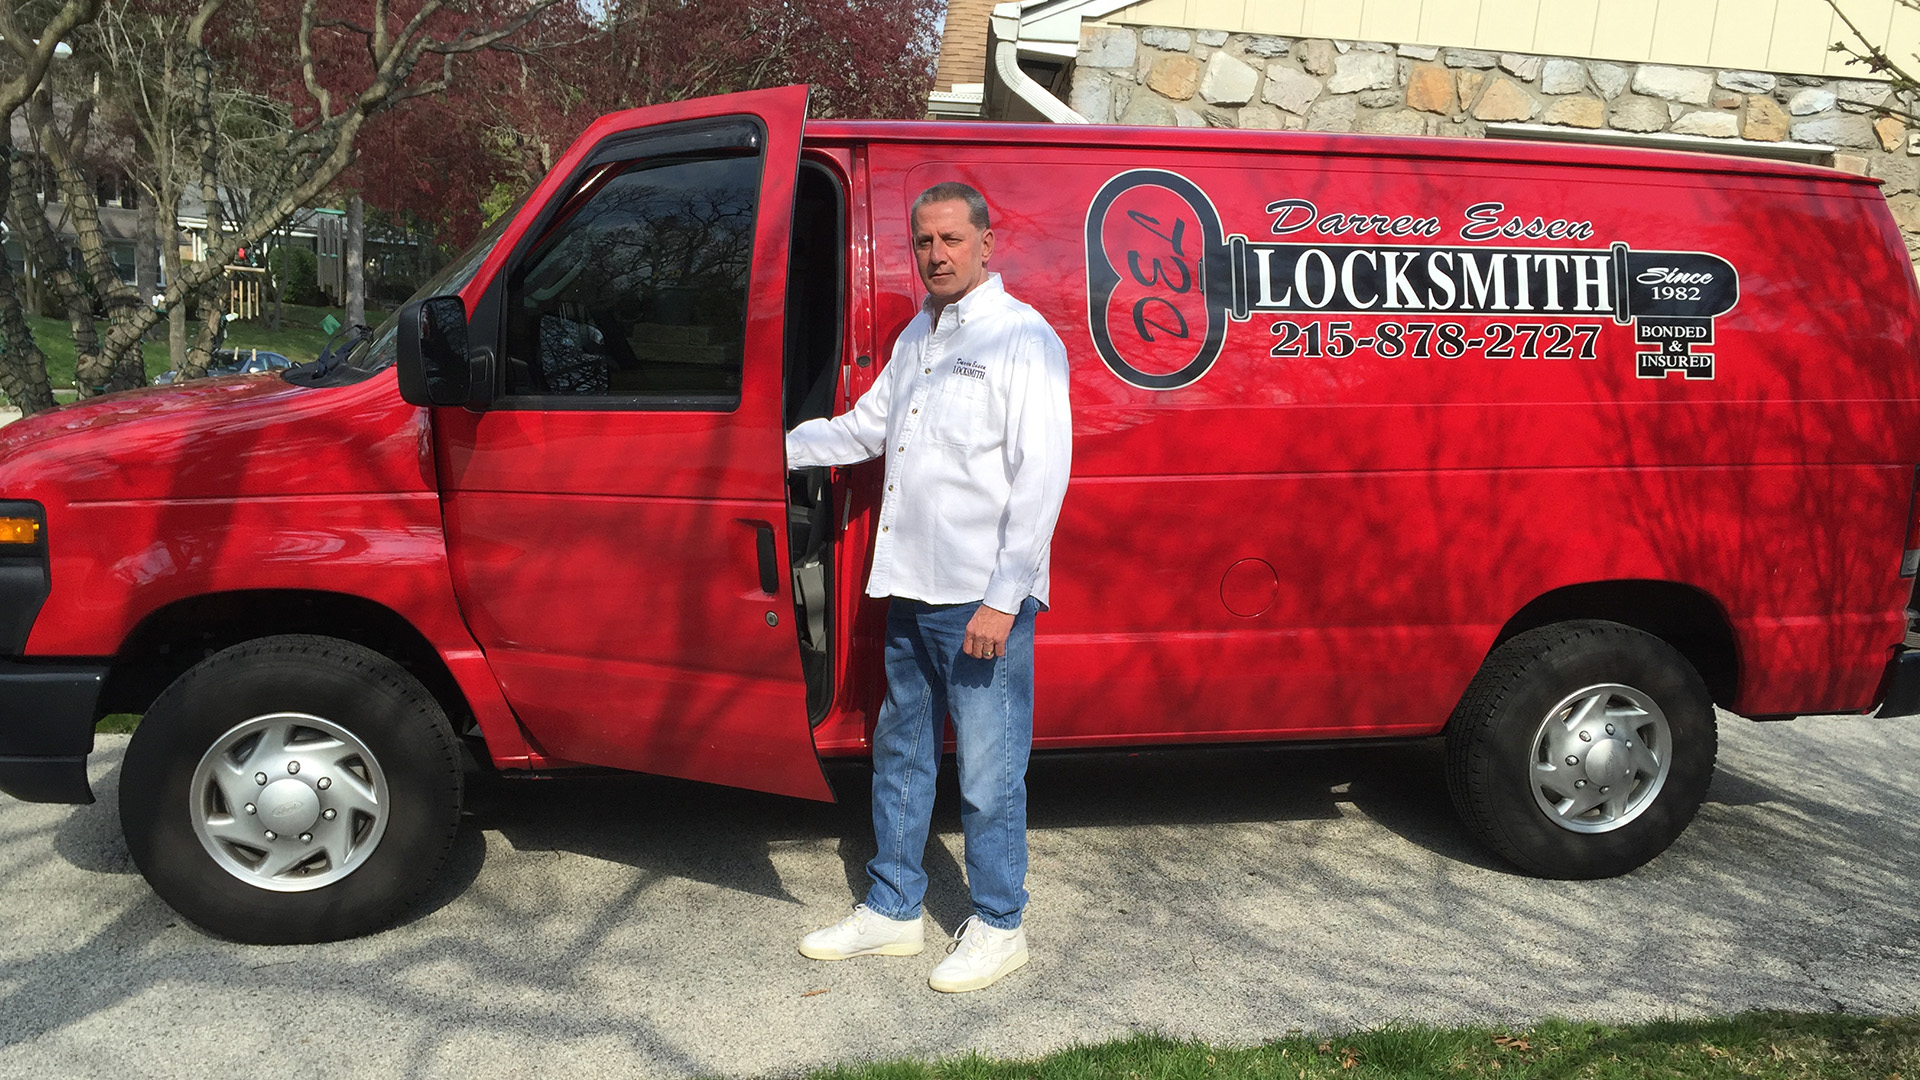 Philadelphia: Locksmith, Lockouts and Locks changed